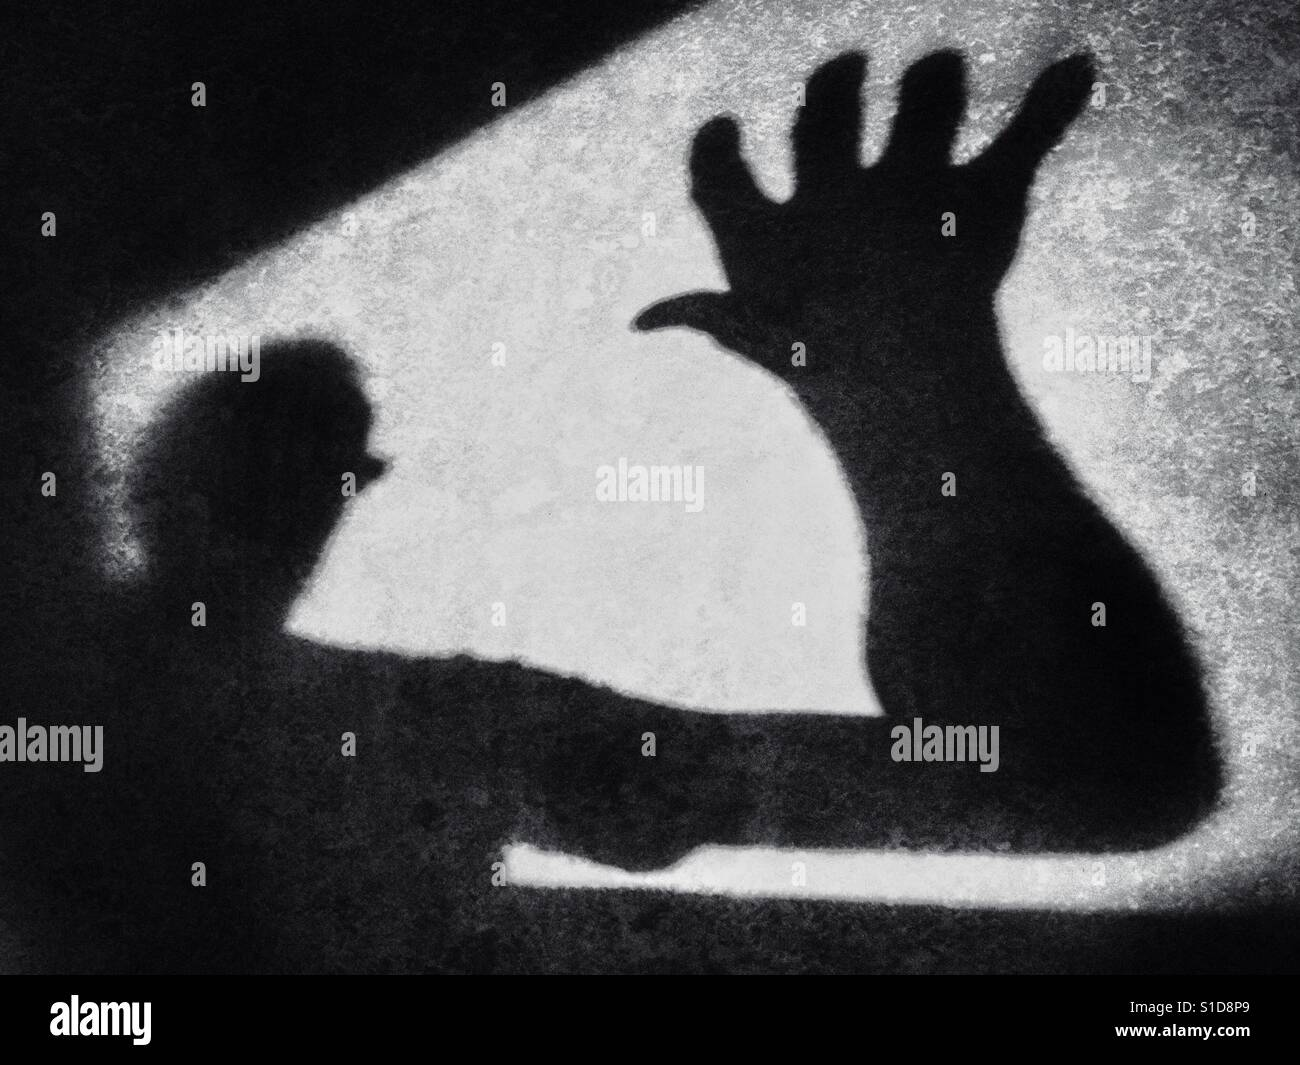 Shadowy figure making a grab. Conceptual image of fear of the unknown - Stock Image